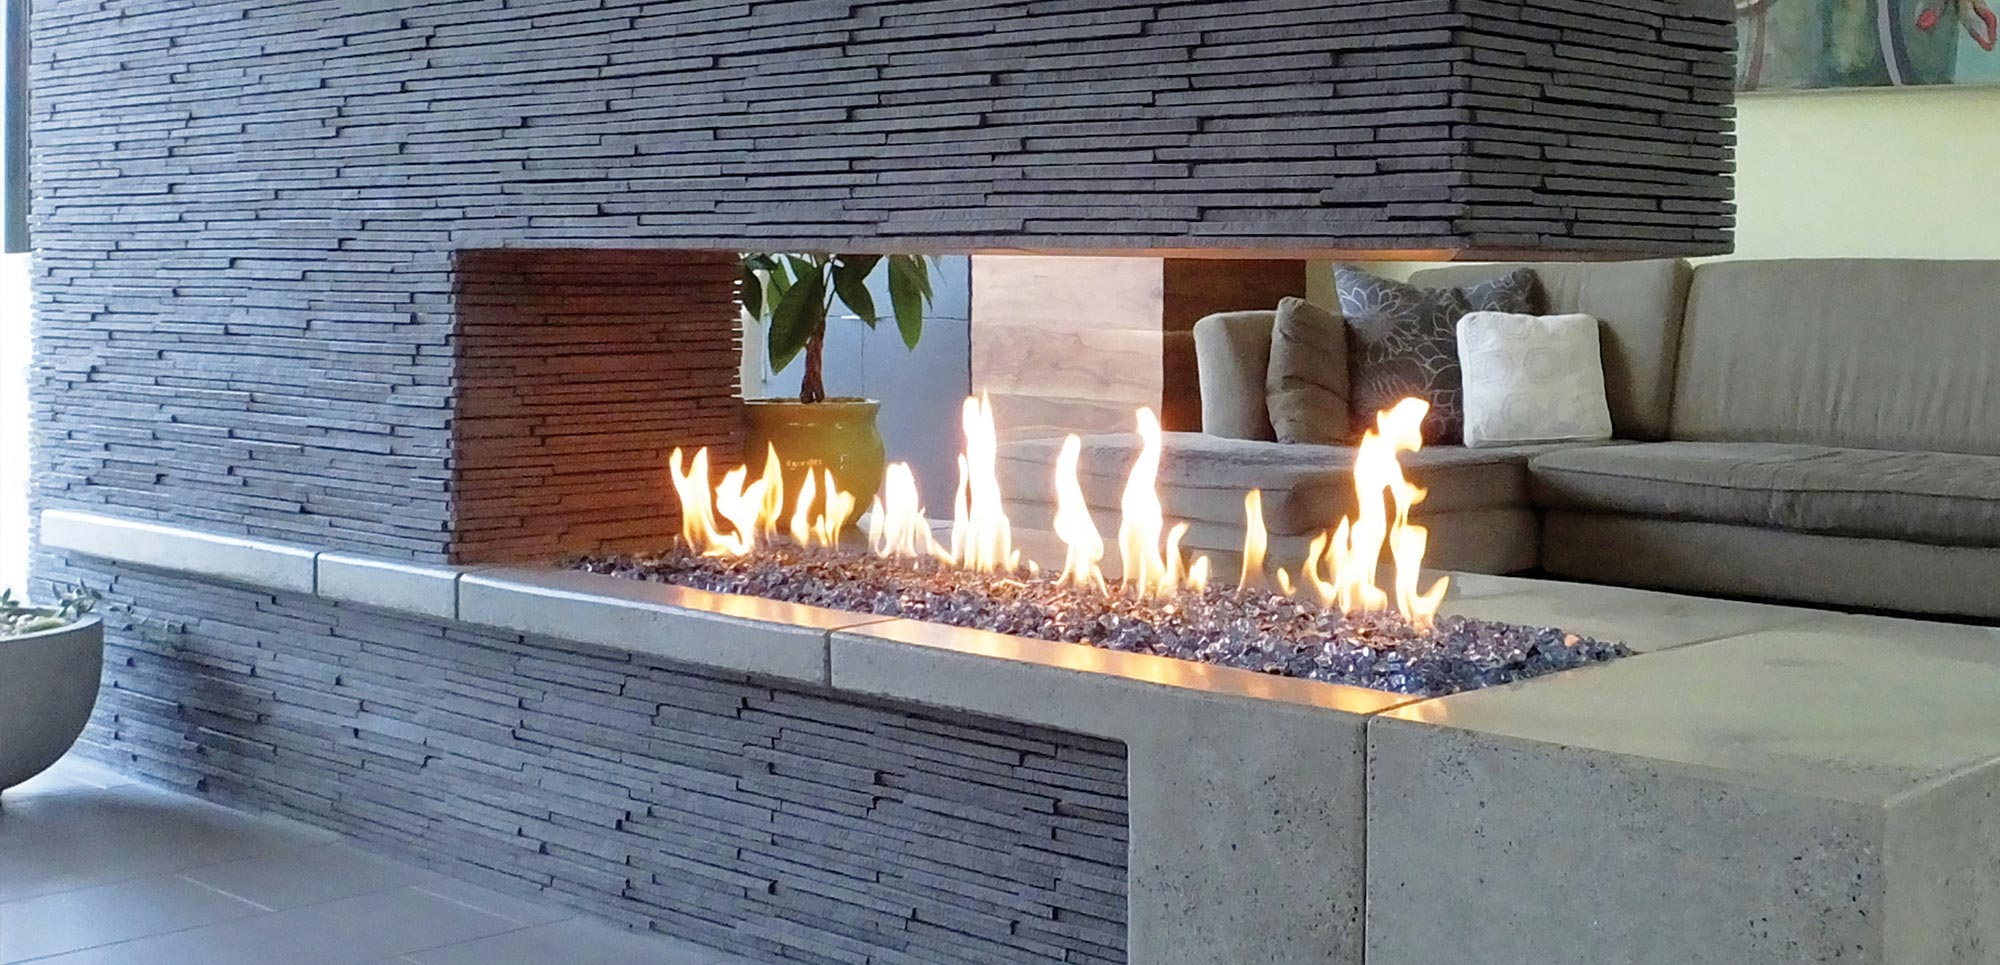 Spark Fireplaces Spark Modern Fires Spark Modern Fires Offers The Best